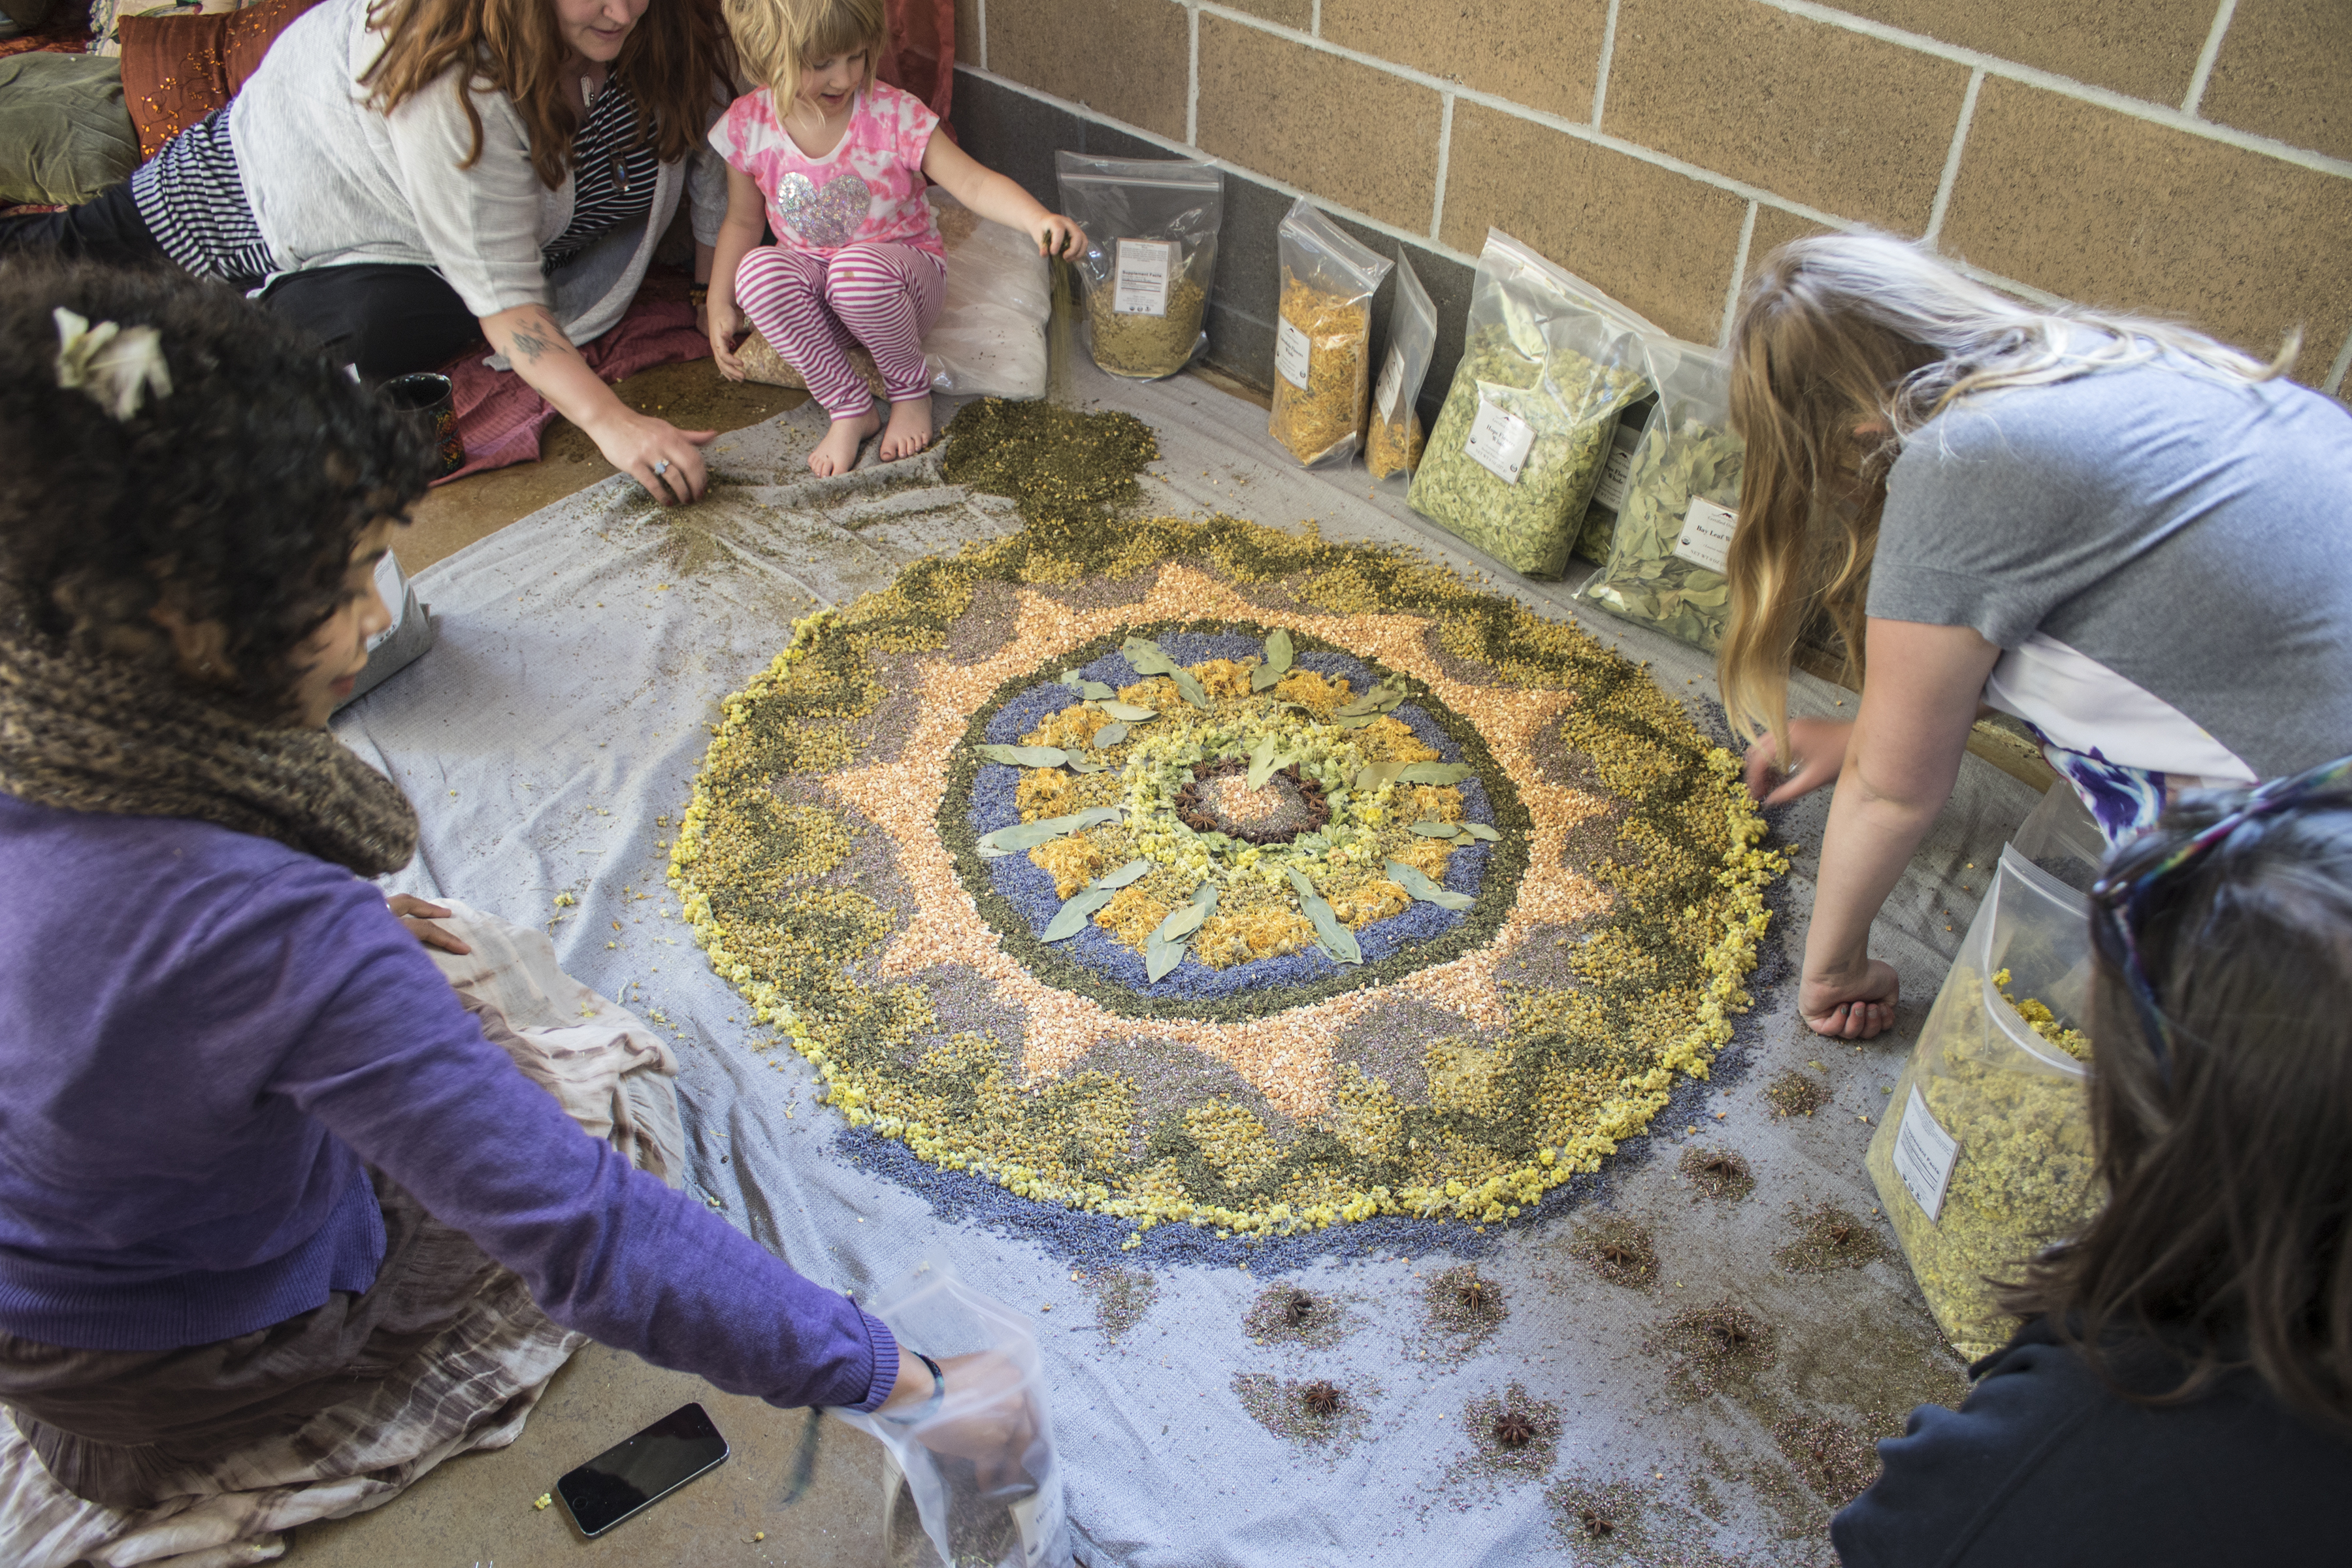 Group of people working on a mandala together with the use of botanicals.